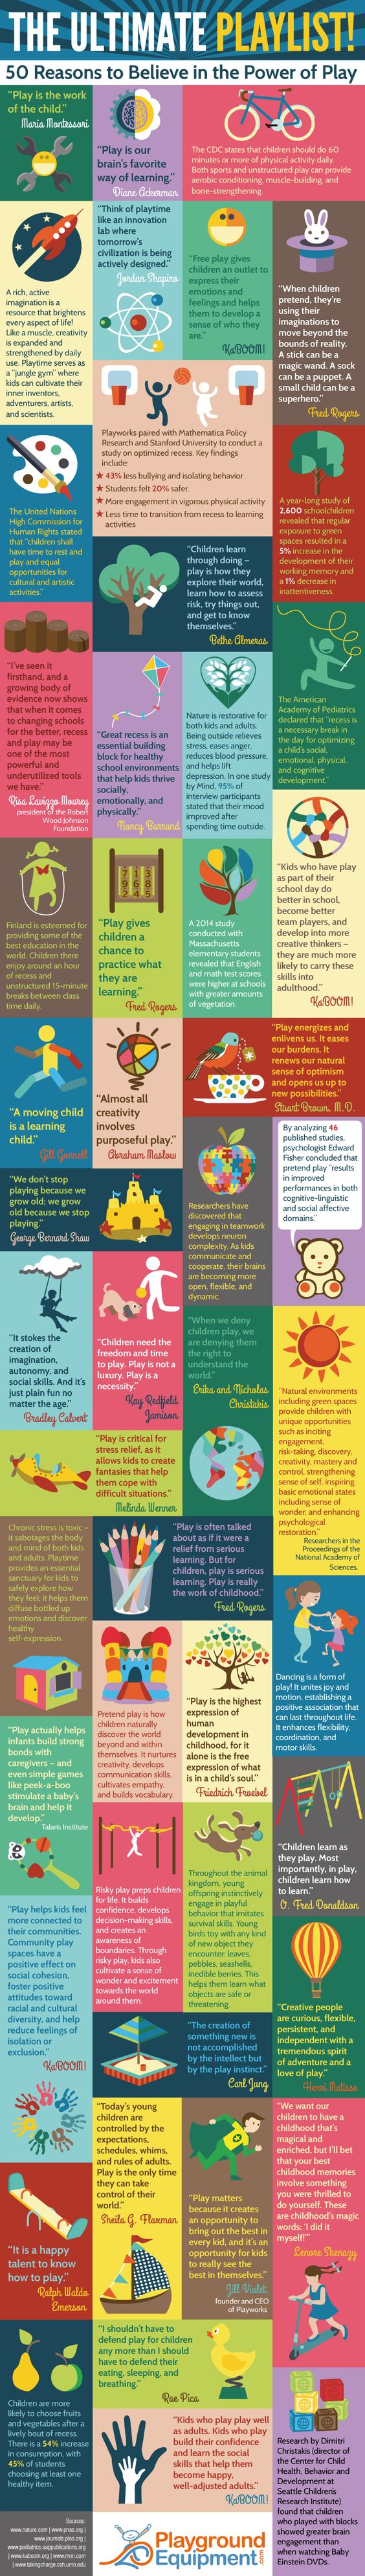 The Ultimate Playlist: 50 Reasons to Believe in the Power of Play #Infographic #Education #Kids